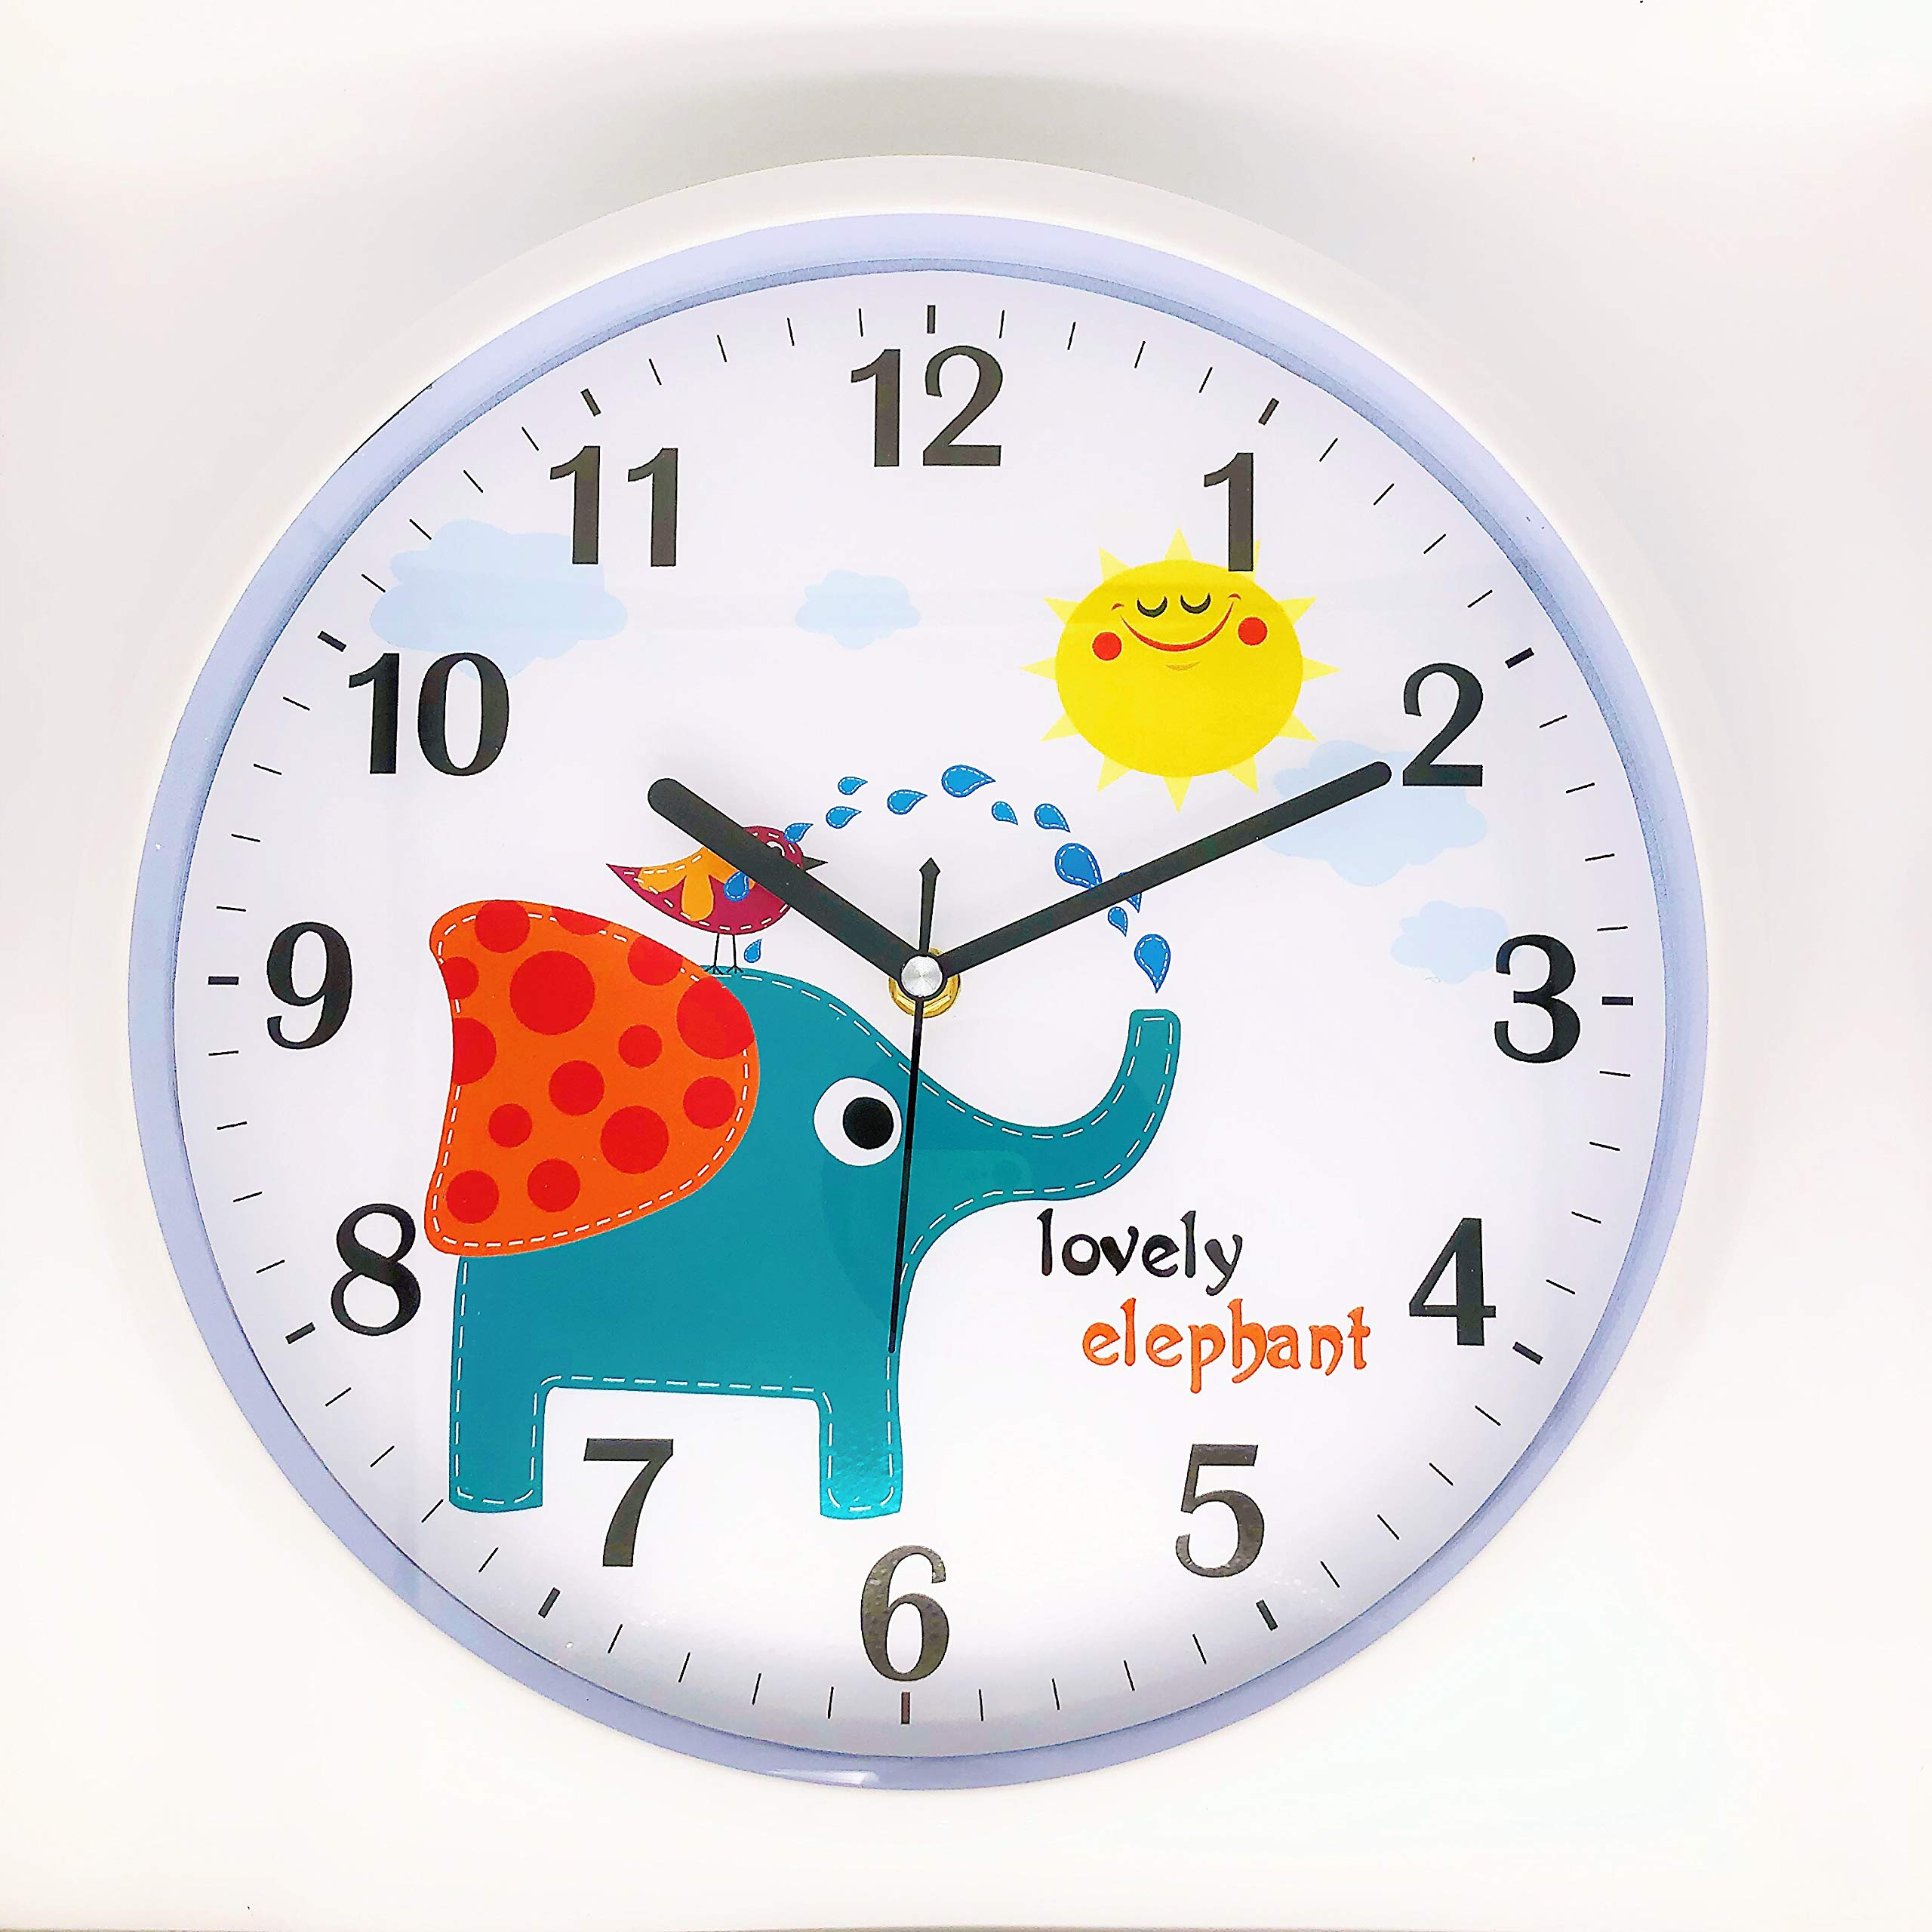 Playroom Blue 12 Inch Decorative Colorful Battery Operated Round Easy to Read Clock for Classroom Home Nursery Room School Silent Non Ticking Lumuasky Kids Wall Clock